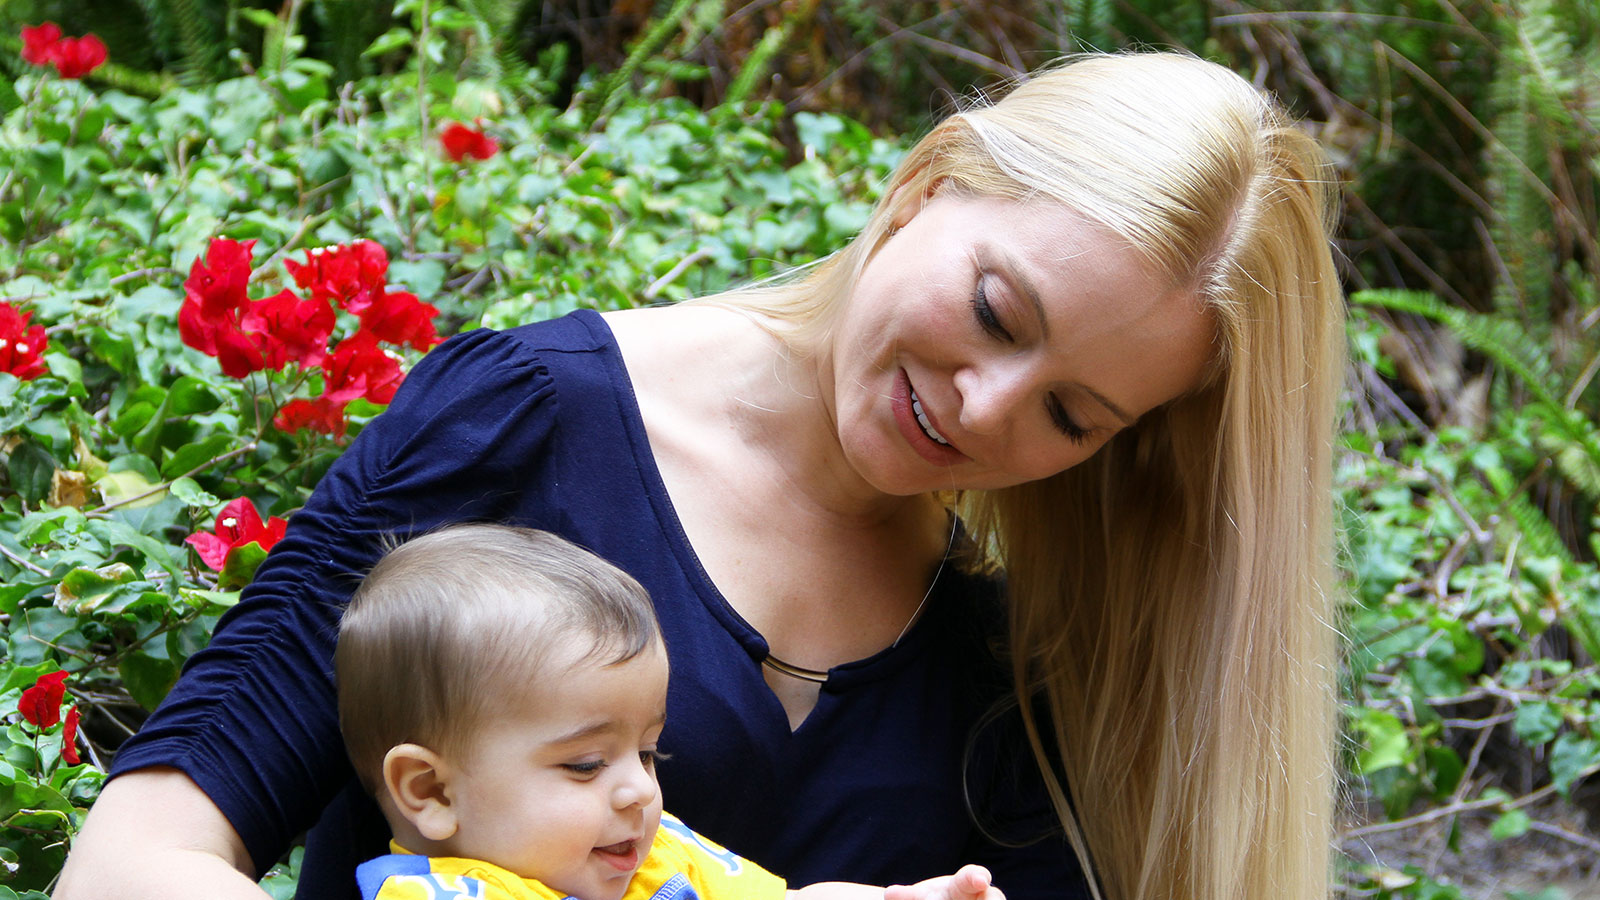 This App Can Explain What Your Baby's Cries Mean